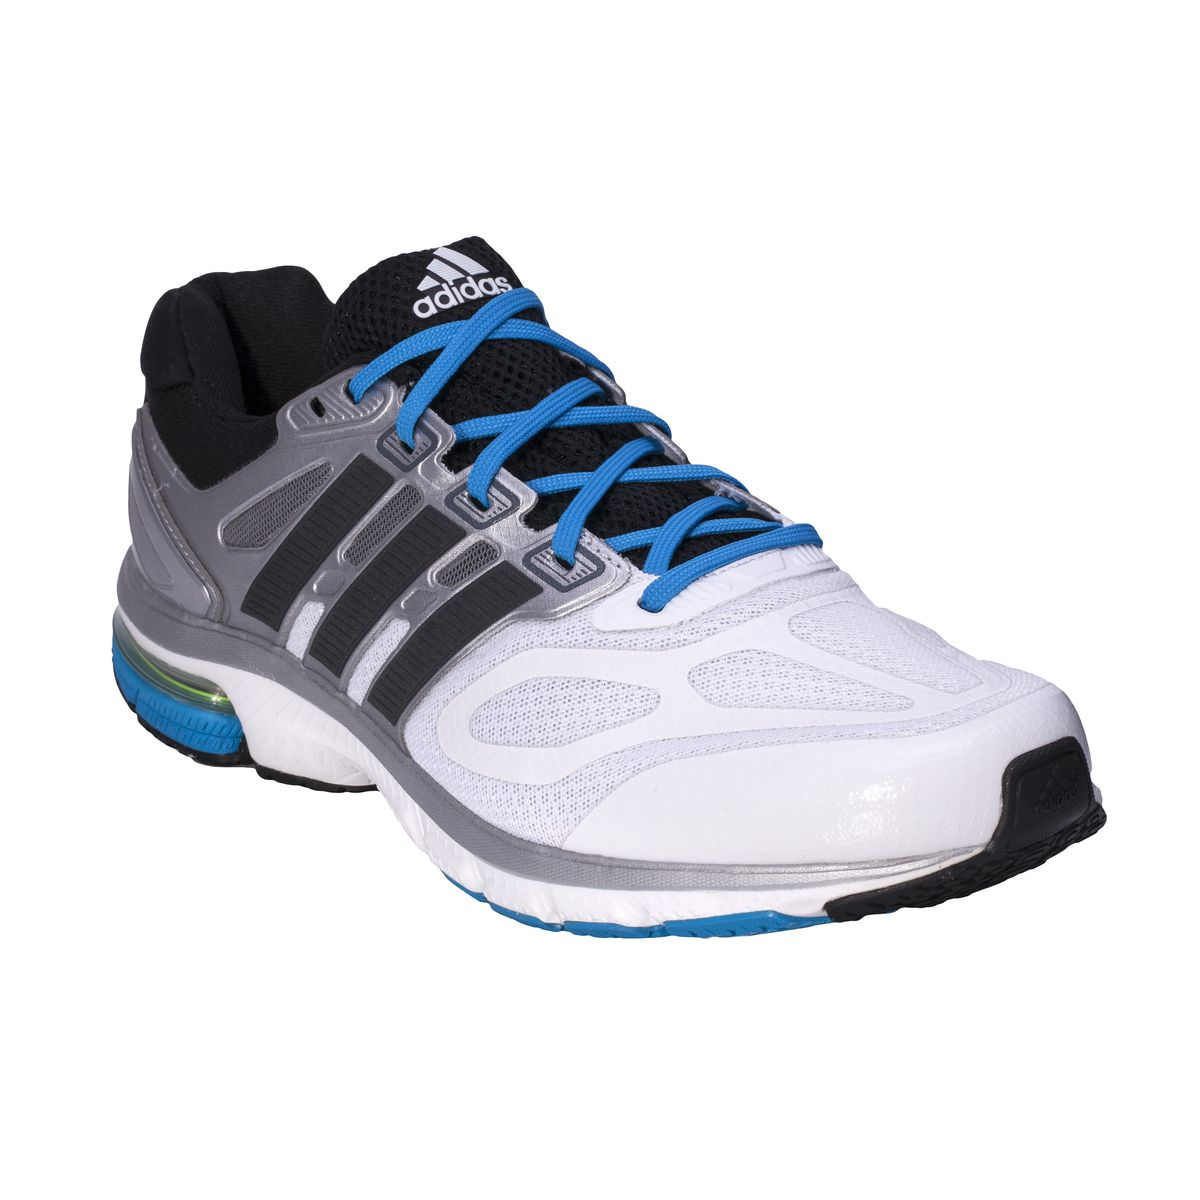 Mens Running Shoes Online South Africa